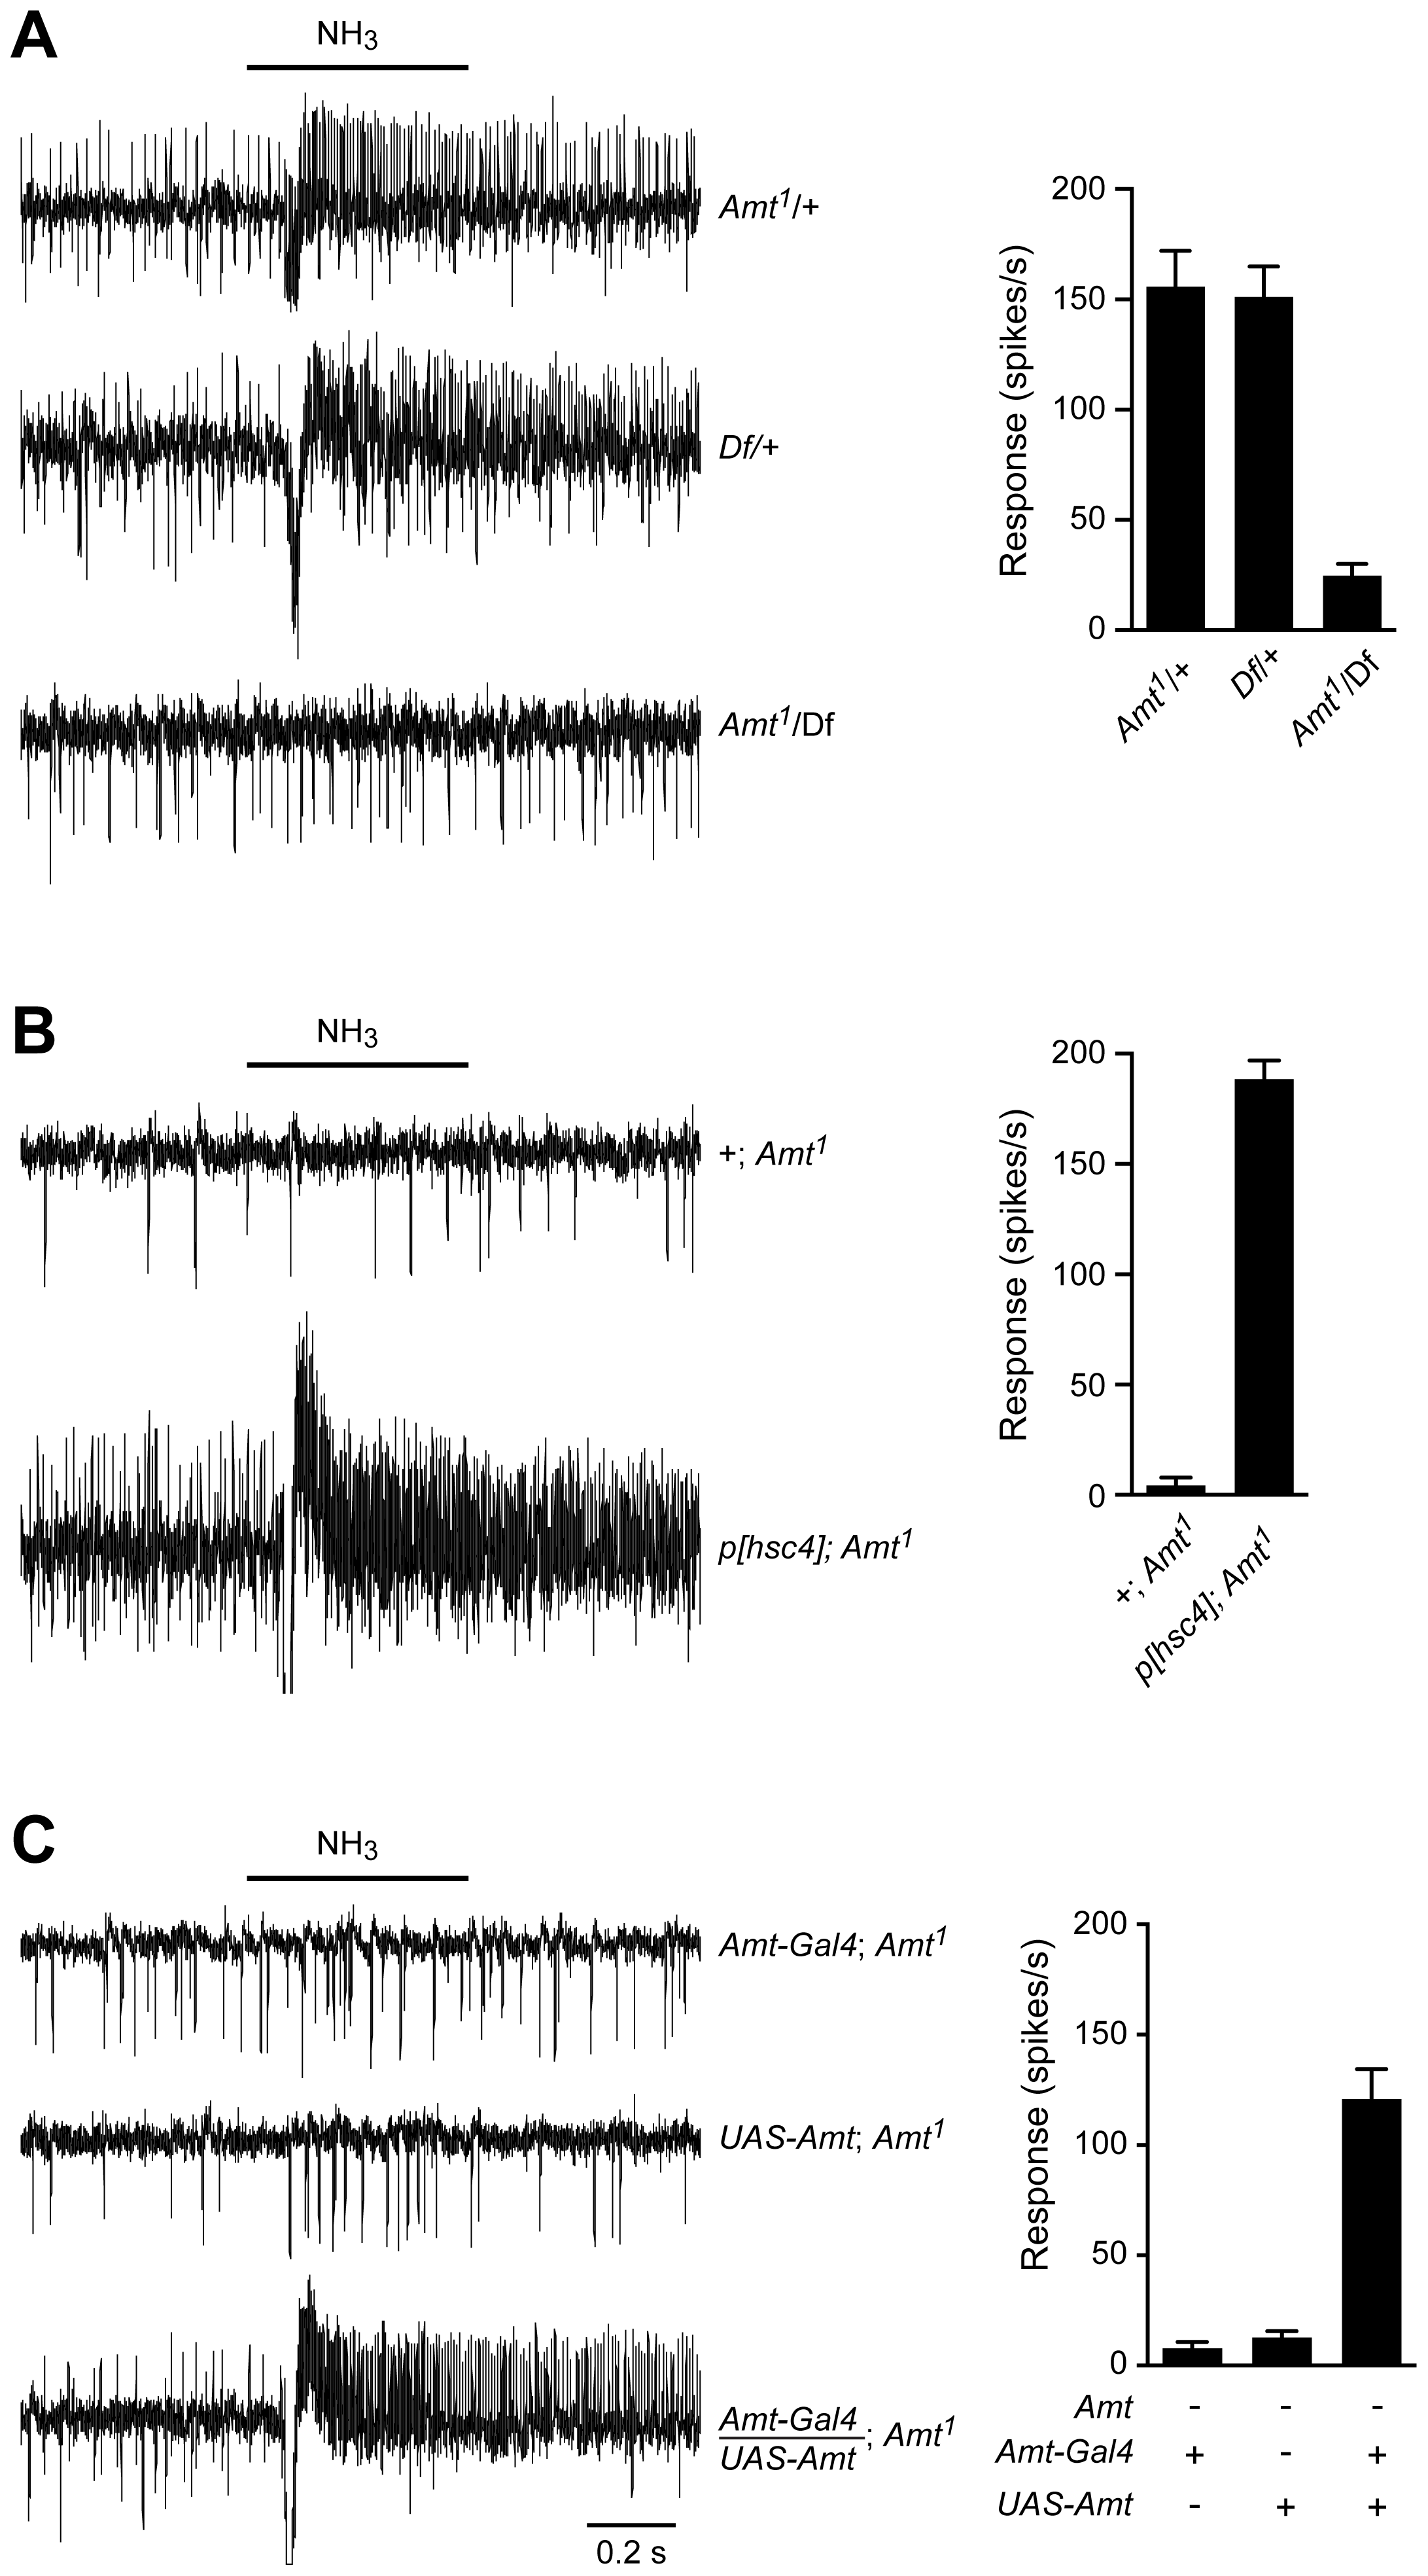 The loss of ammonia response localizes to the <i>Amt</i> gene.